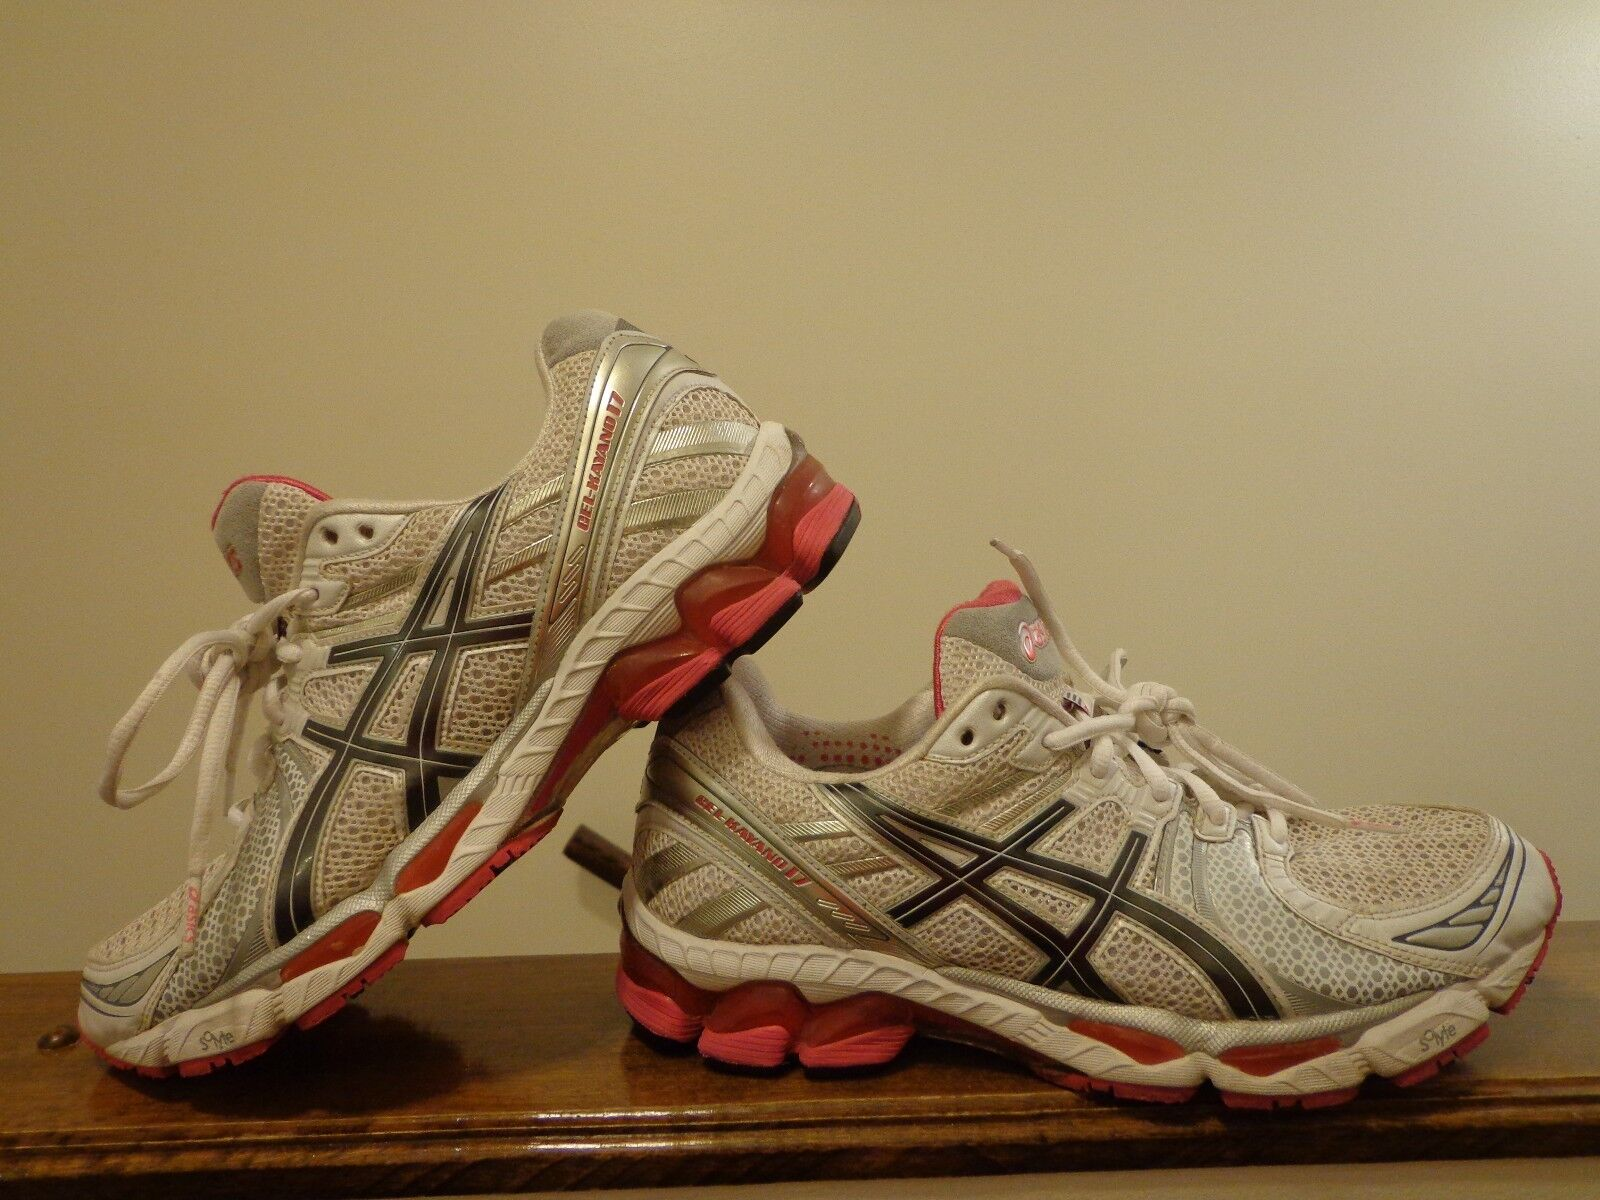 Asics Gel-Kayano 17 Athletic (T150N)  Women's shoes Multi-color Size 10